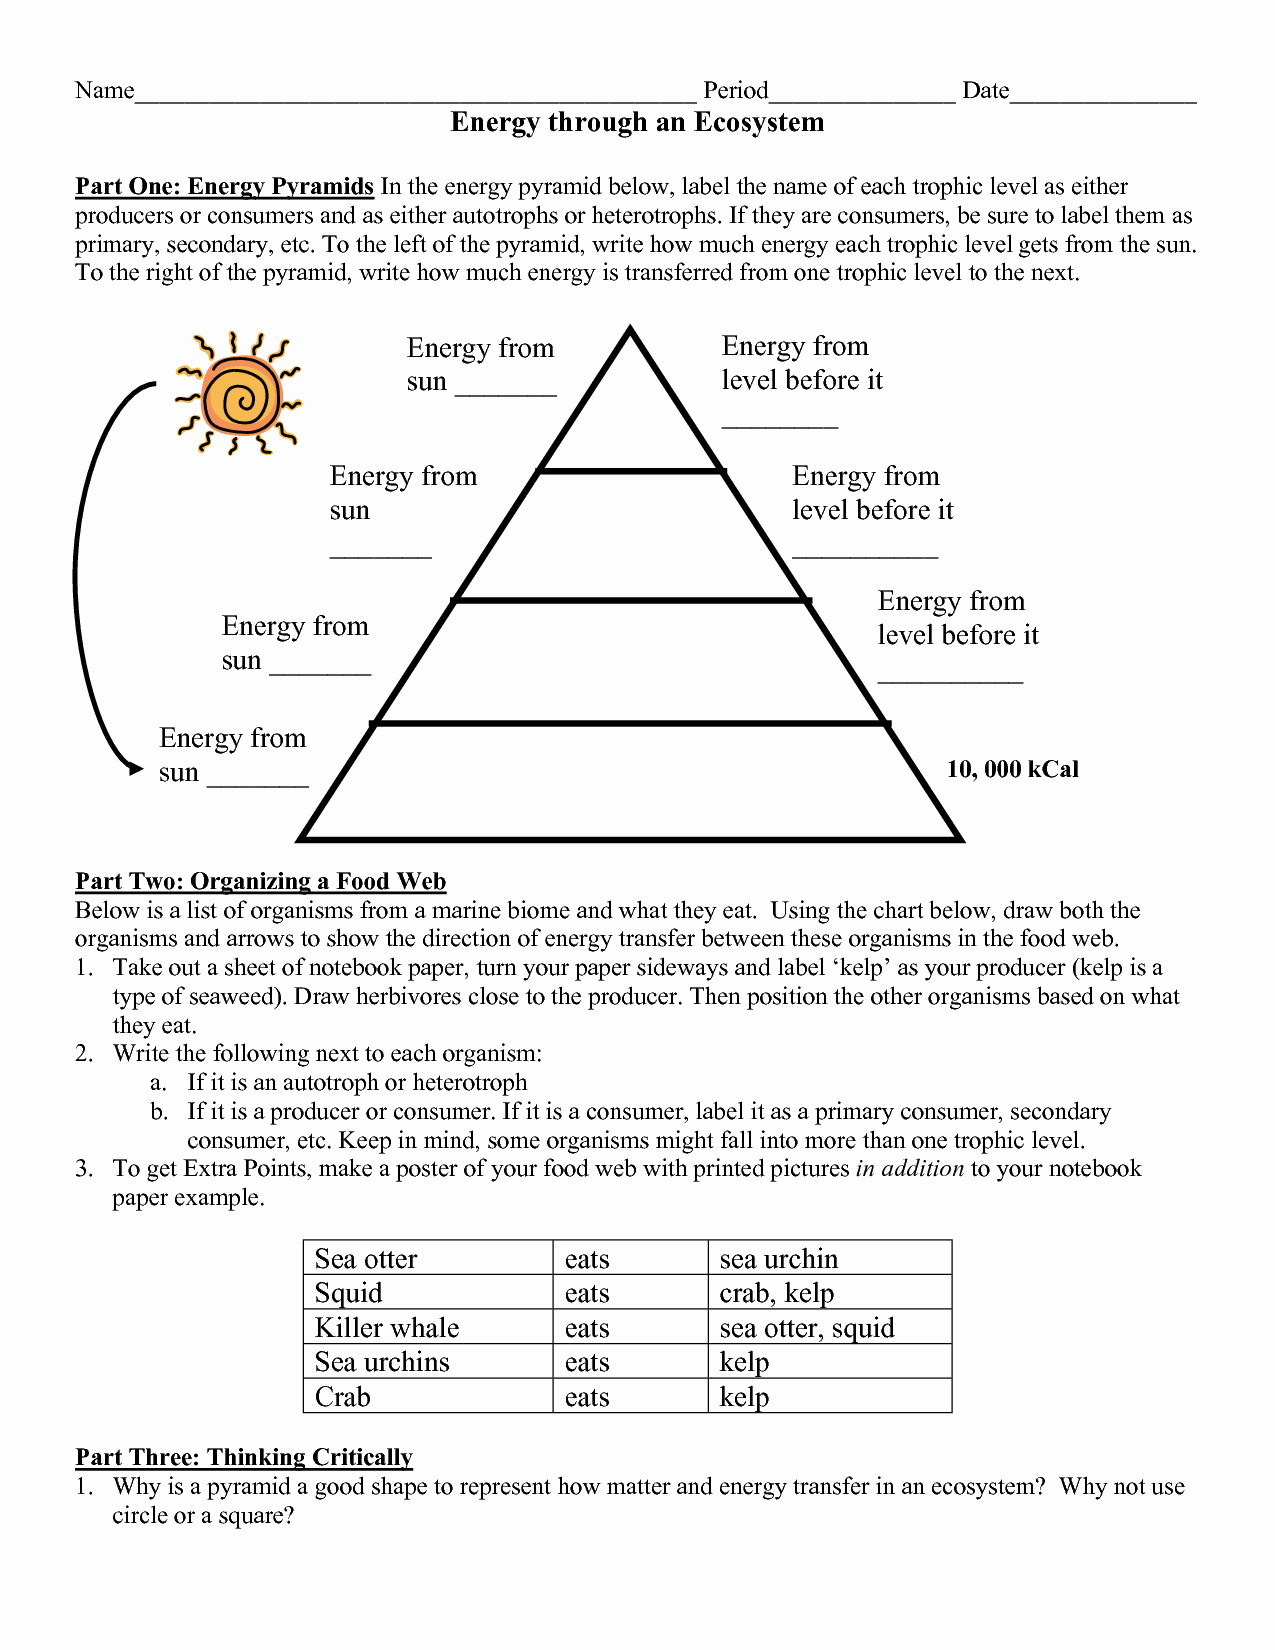 Levels Of Ecological organization Worksheet Beautiful 9 Best Of Energy Pyramid Trophic Levels Worksheet